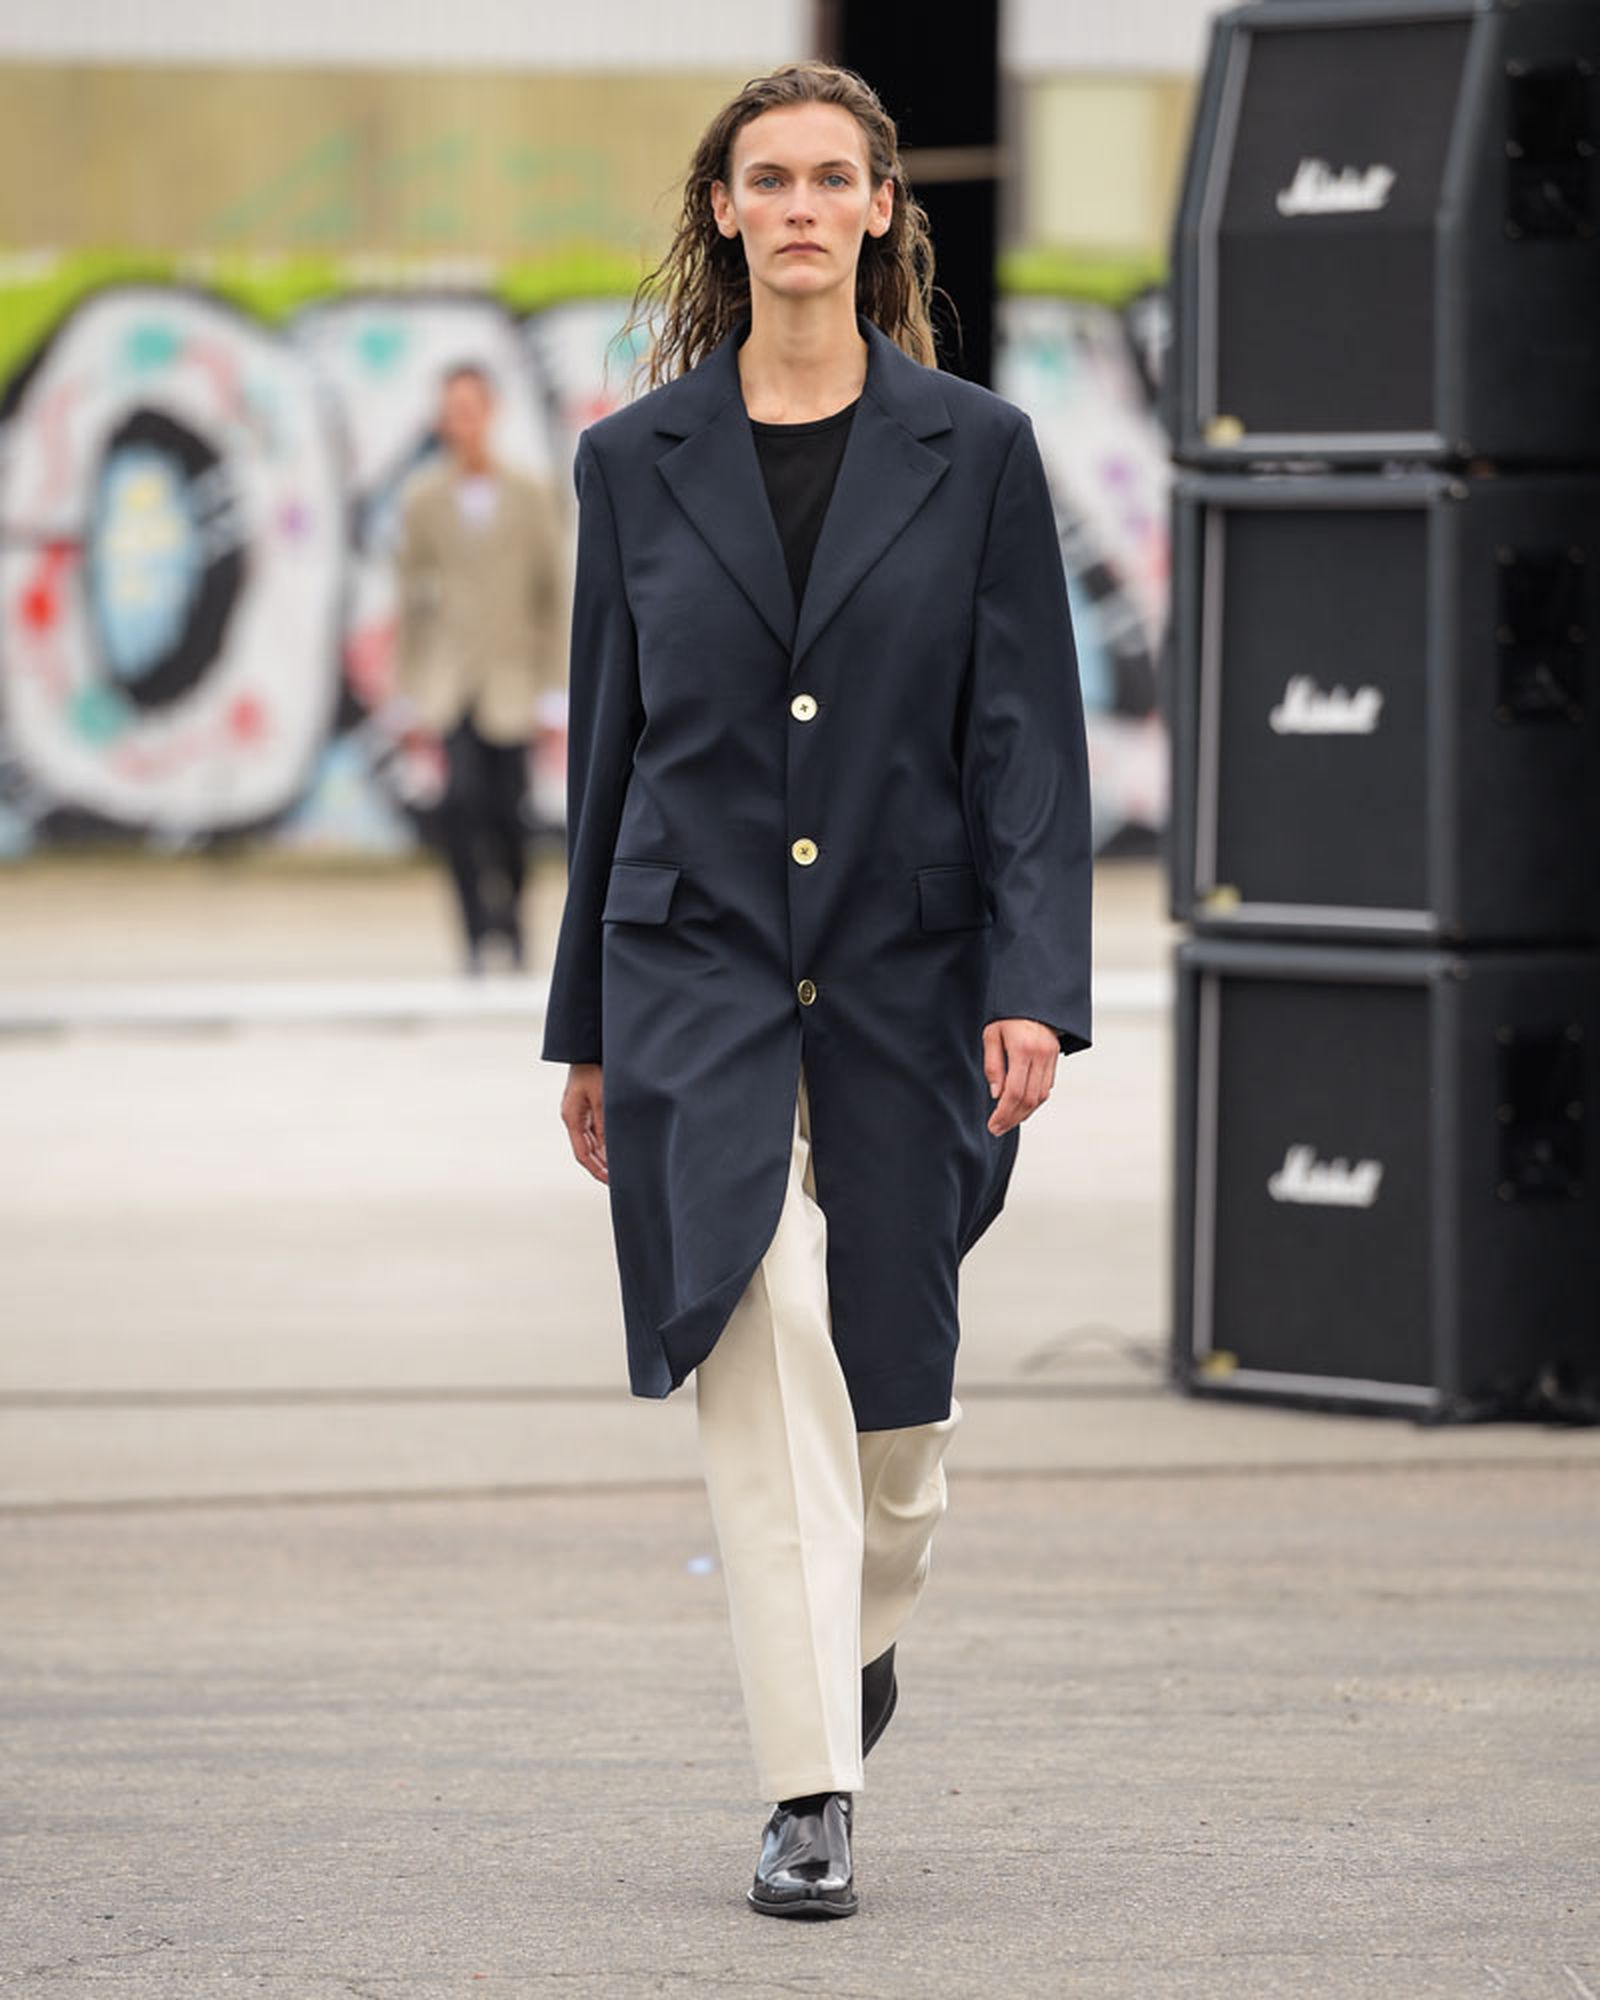 copenhagen fashion week 2019 recap sunflower 7days holzweiler muf10